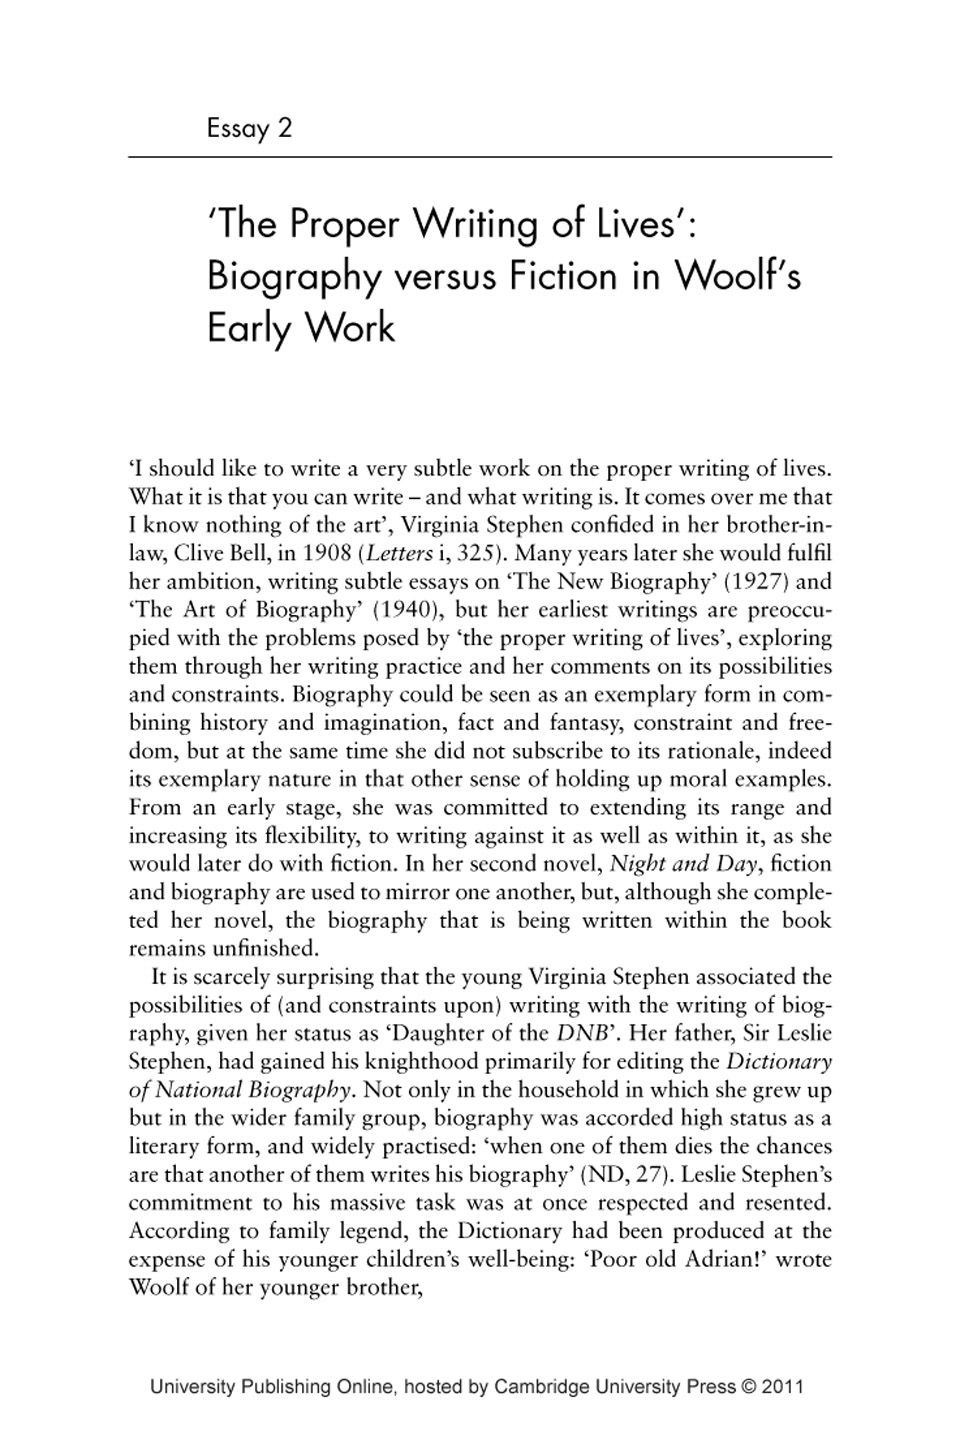 William Shakespeare Biography Essay  Veterinariancolleges Ap English Essays After High School Essay William Shakespeare Biography Essay  Veterinariancolleges My Autobiography Essay also Animal Testing Essay Thesis